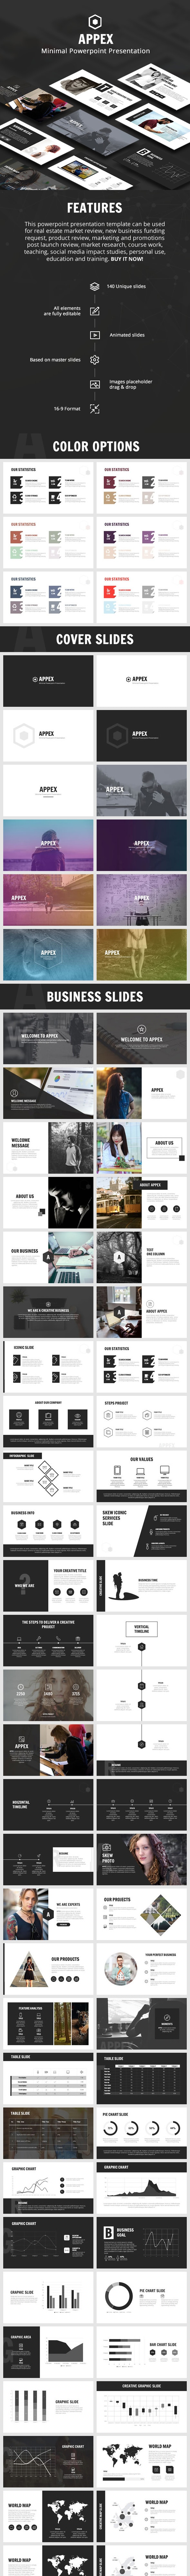 Appex Minimal Powerpoint - V.2 - Business PowerPoint Templates